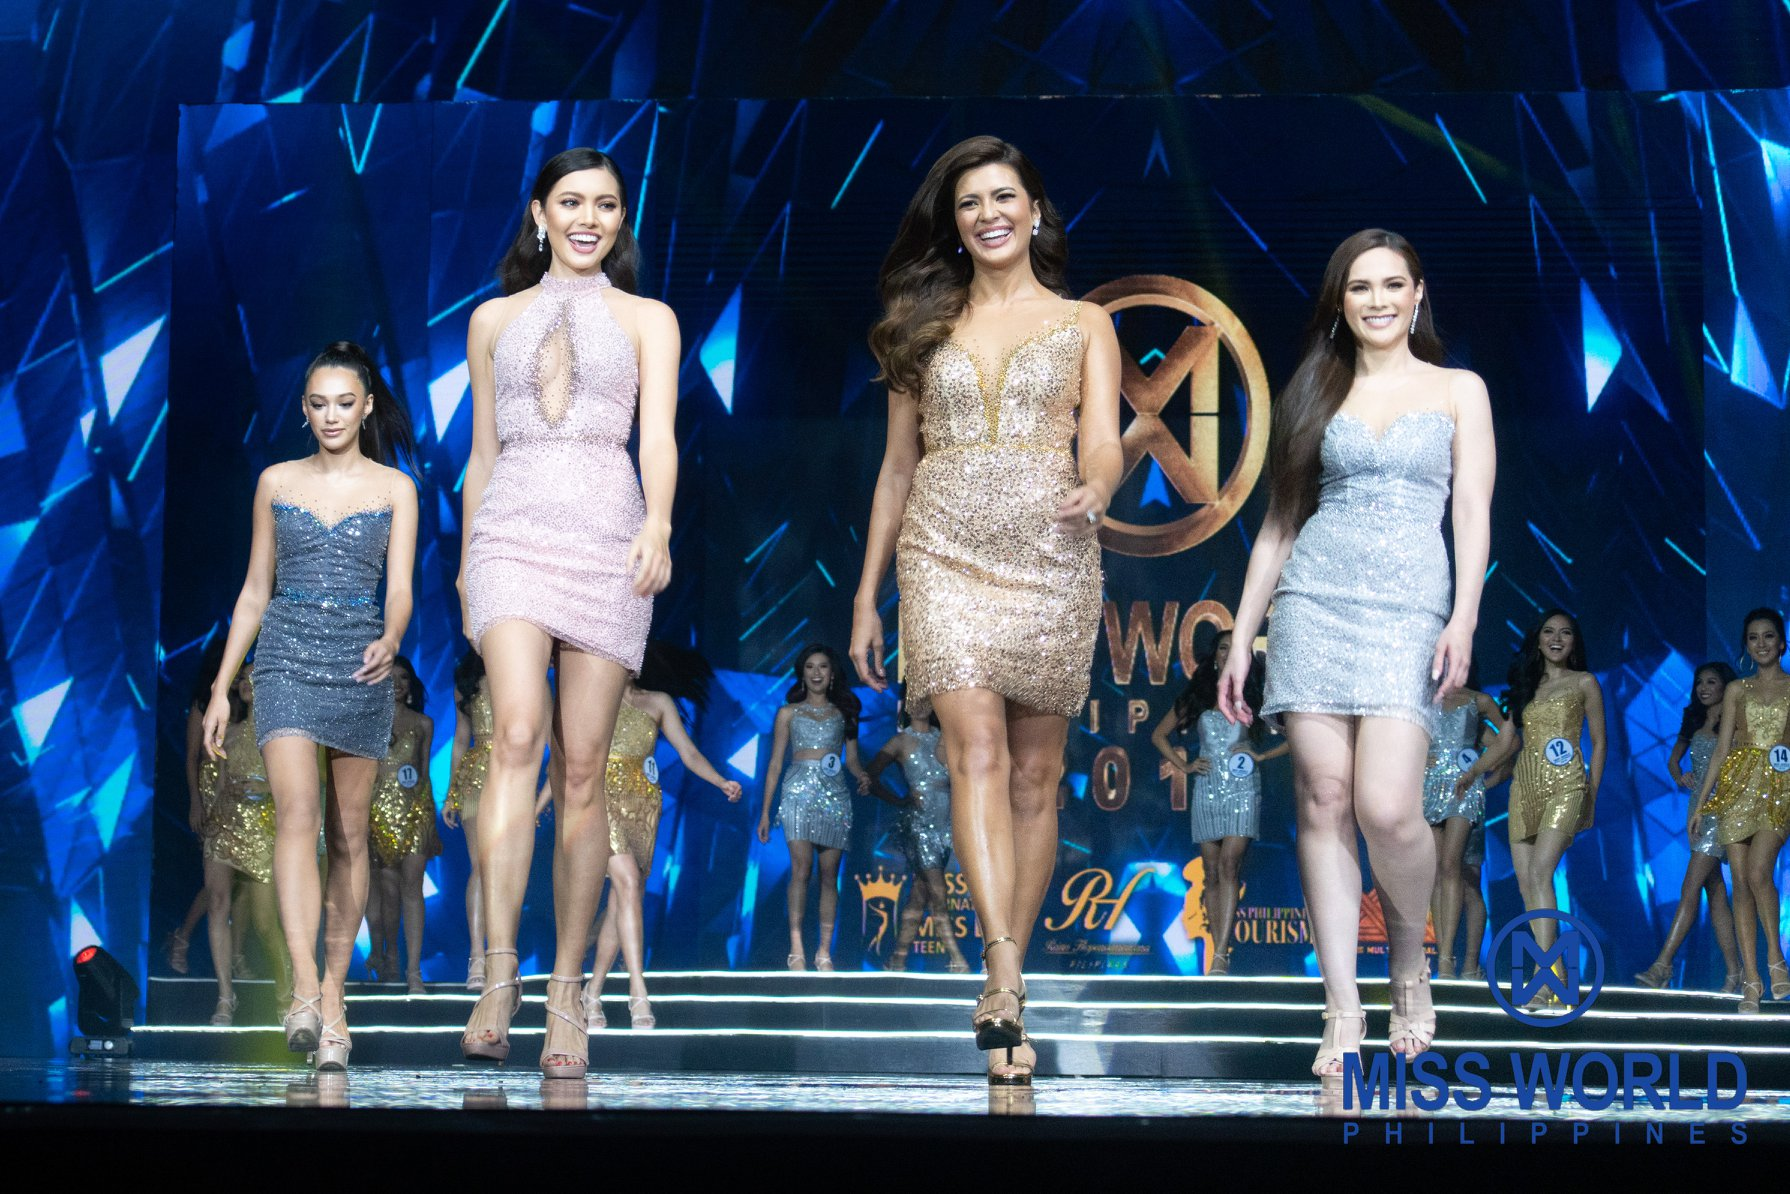 Photo from Miss World Philippines Facebook page